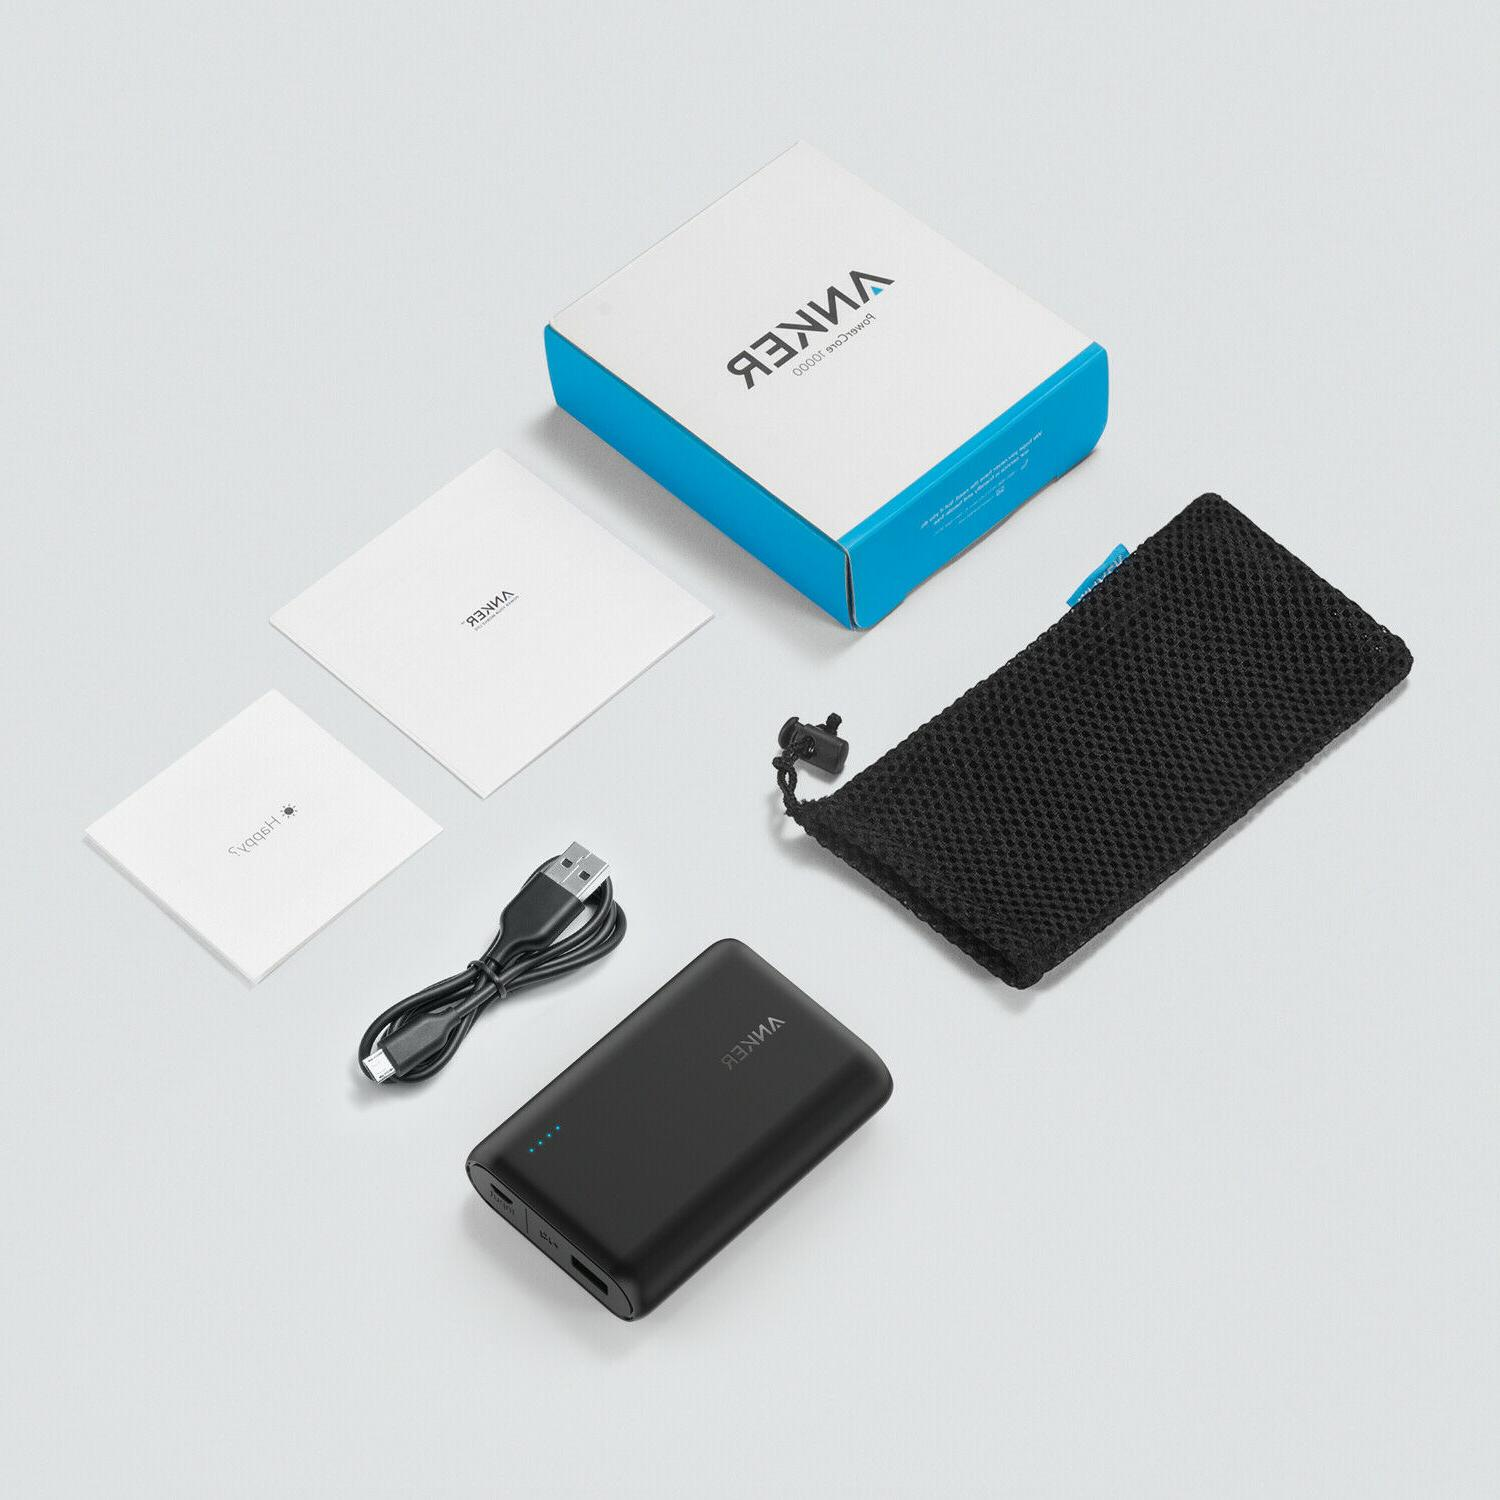 Anker 10000mAh Portable for iPhone